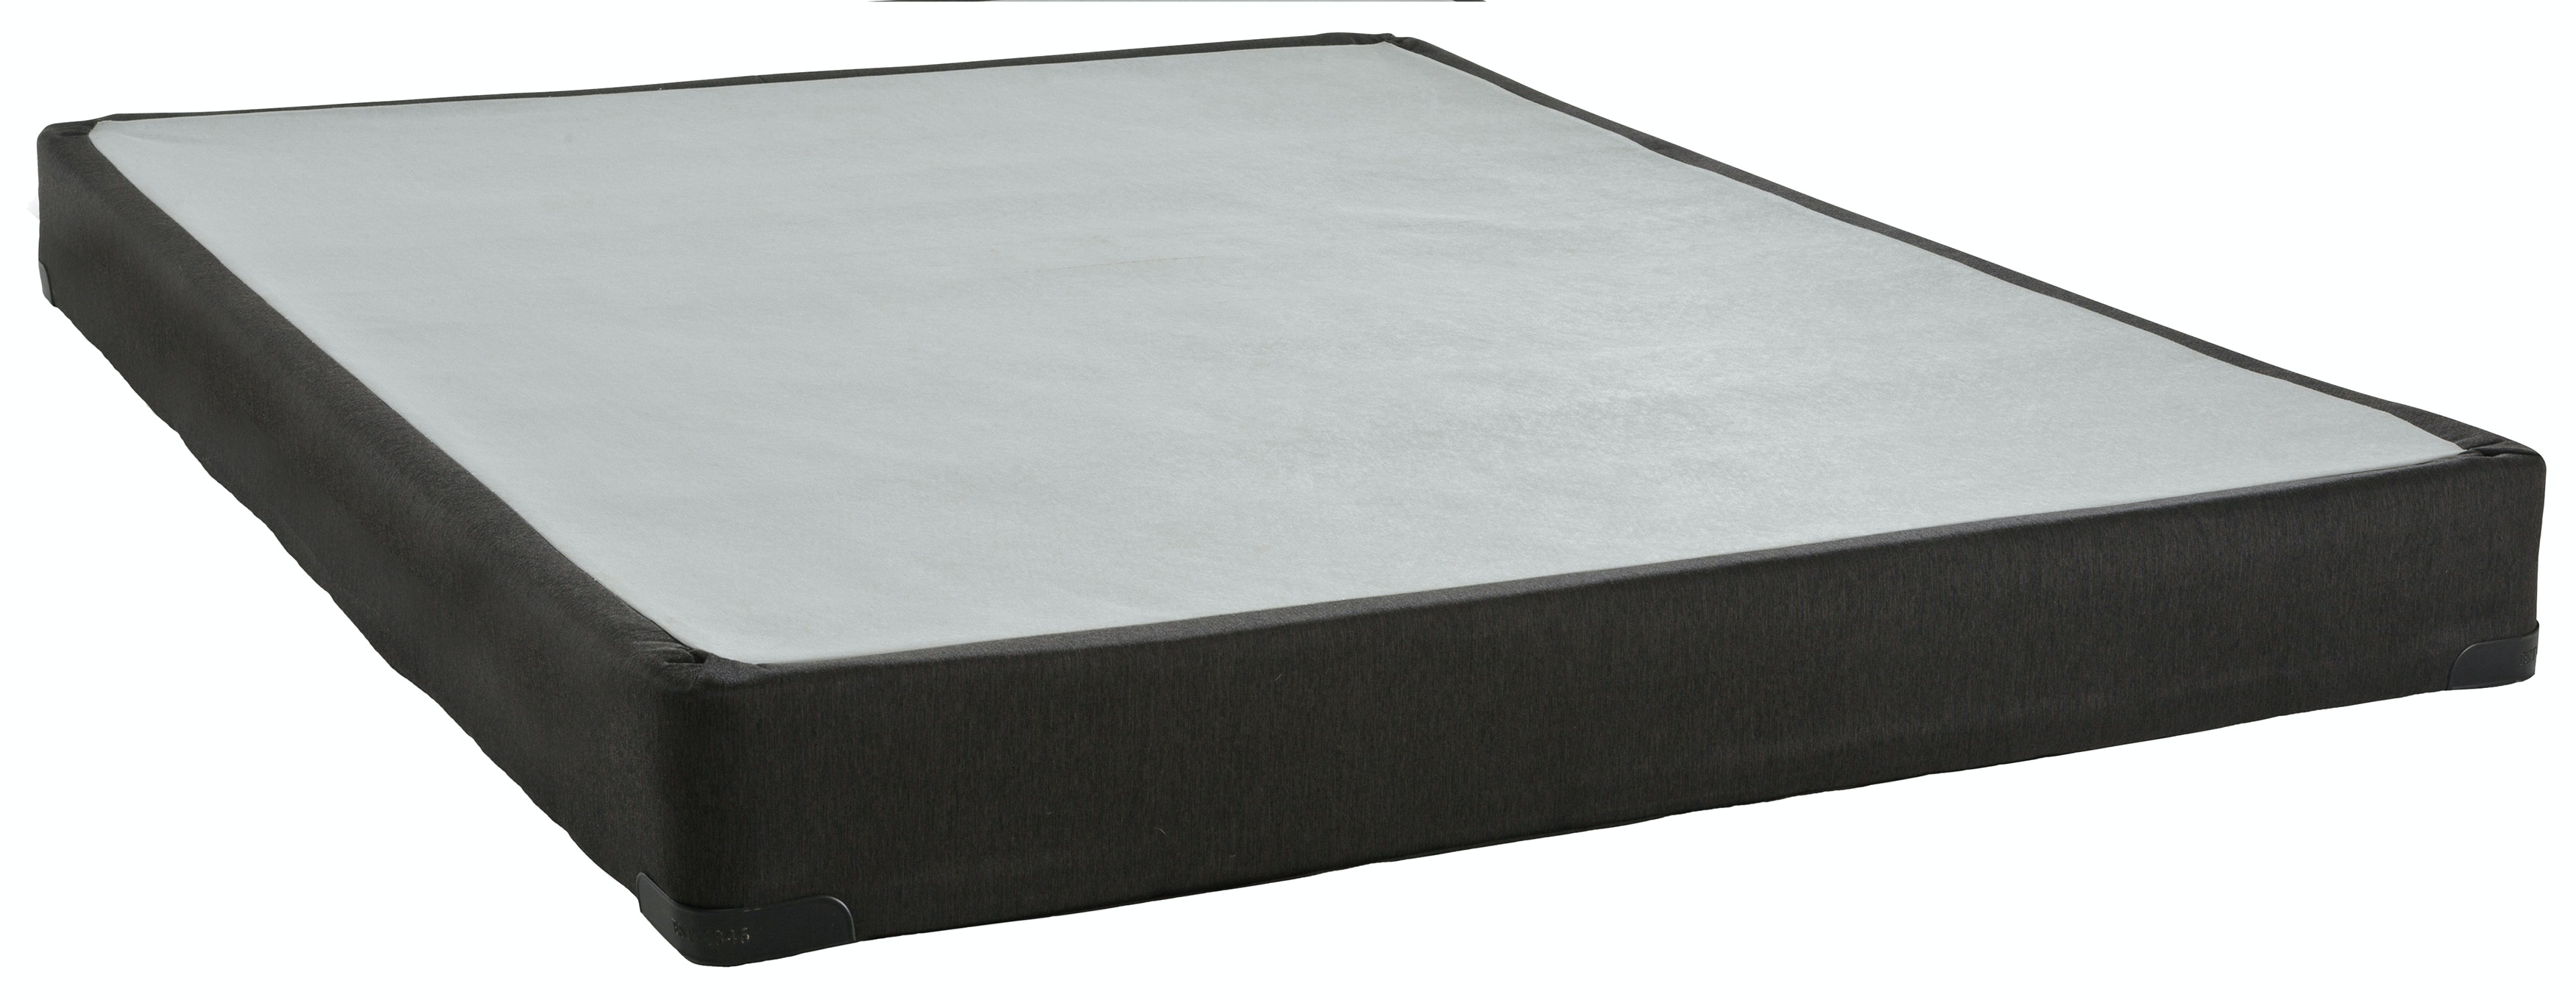 Mattresses Stearns Foster Low Profile Box Spring